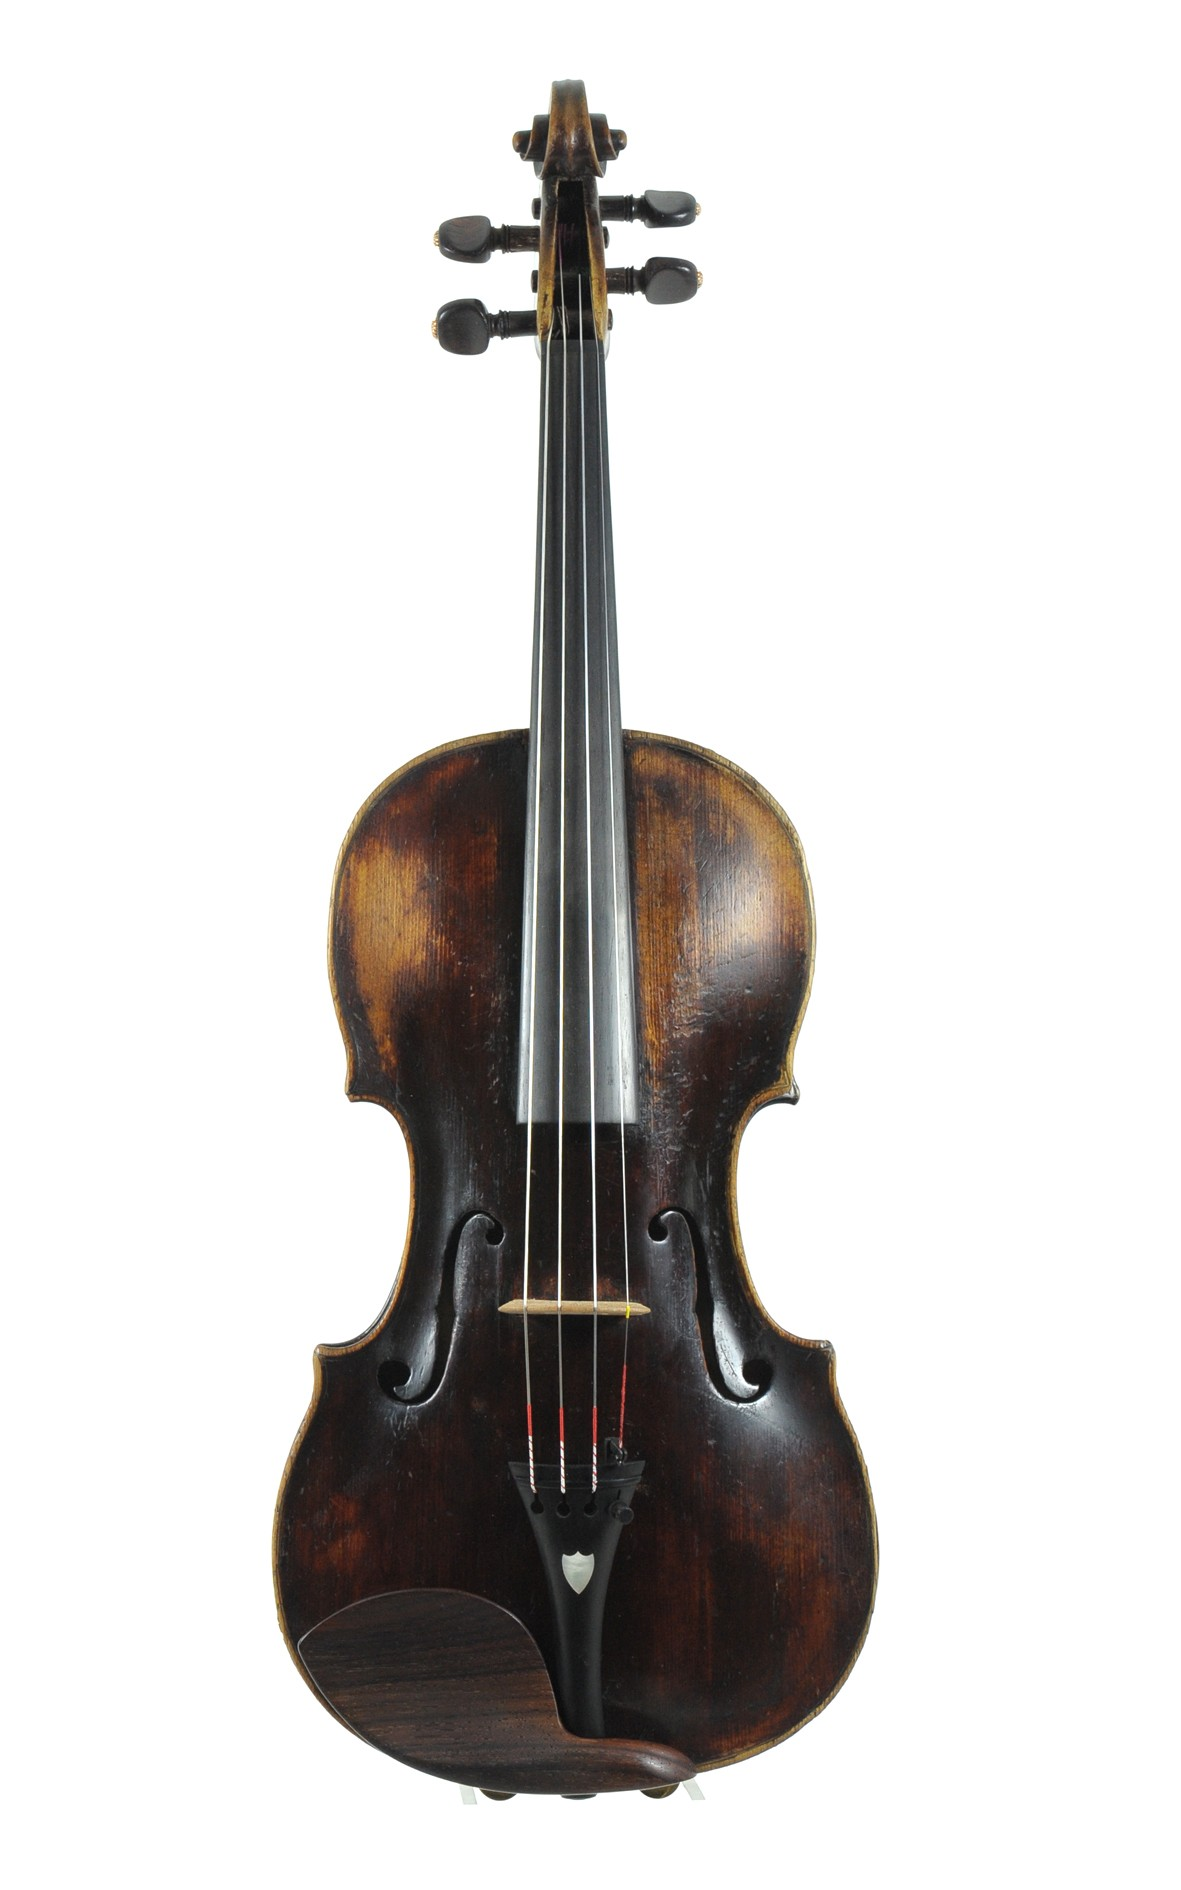 Master violin of the Viennese school circa 1780 - probably Thir family